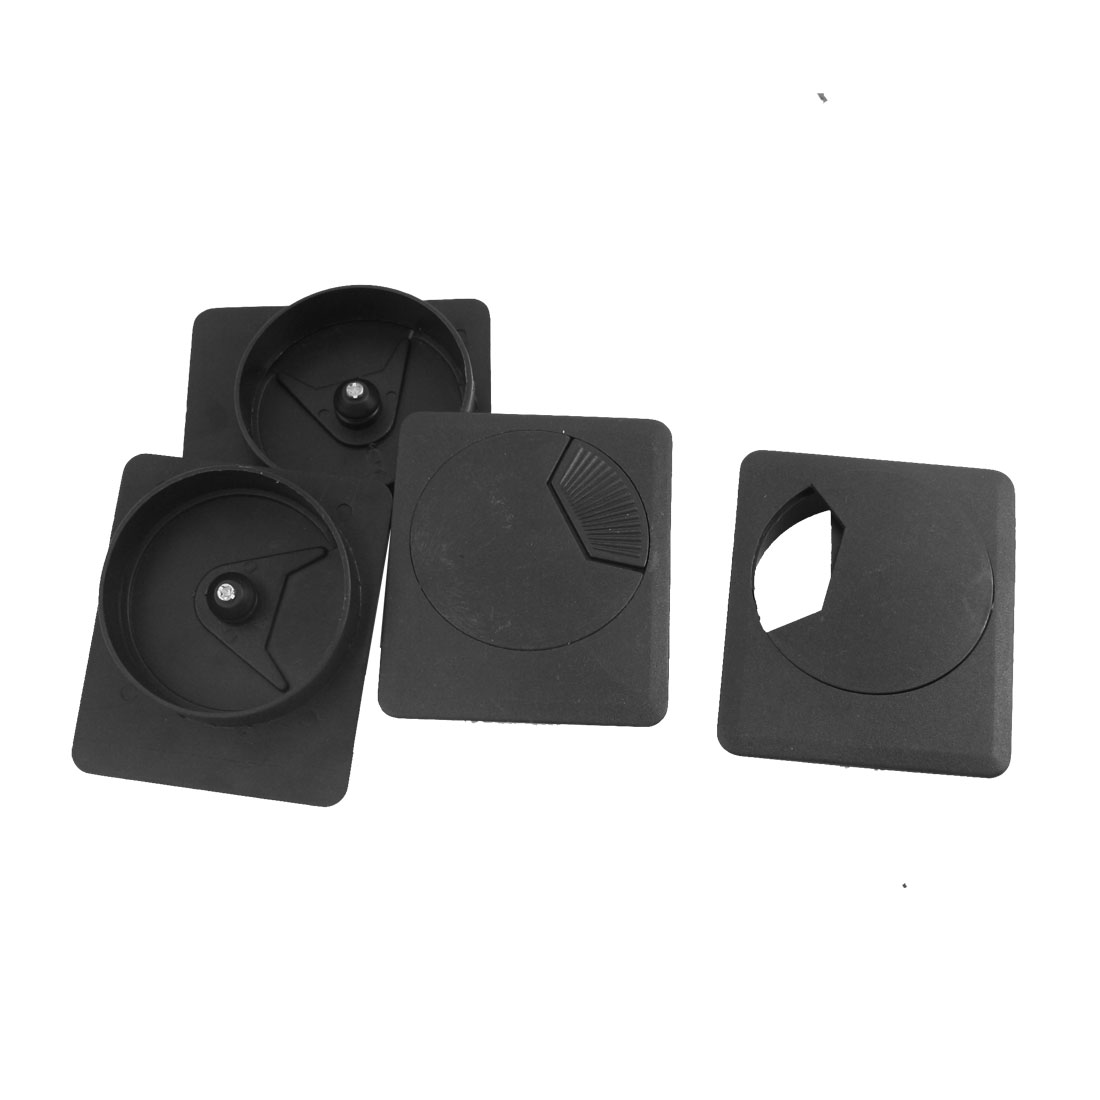 4 Pcs 55mm Mounting Hole Diameter Computer Desk Table Counter Top Cable Cord Plastic Grommets